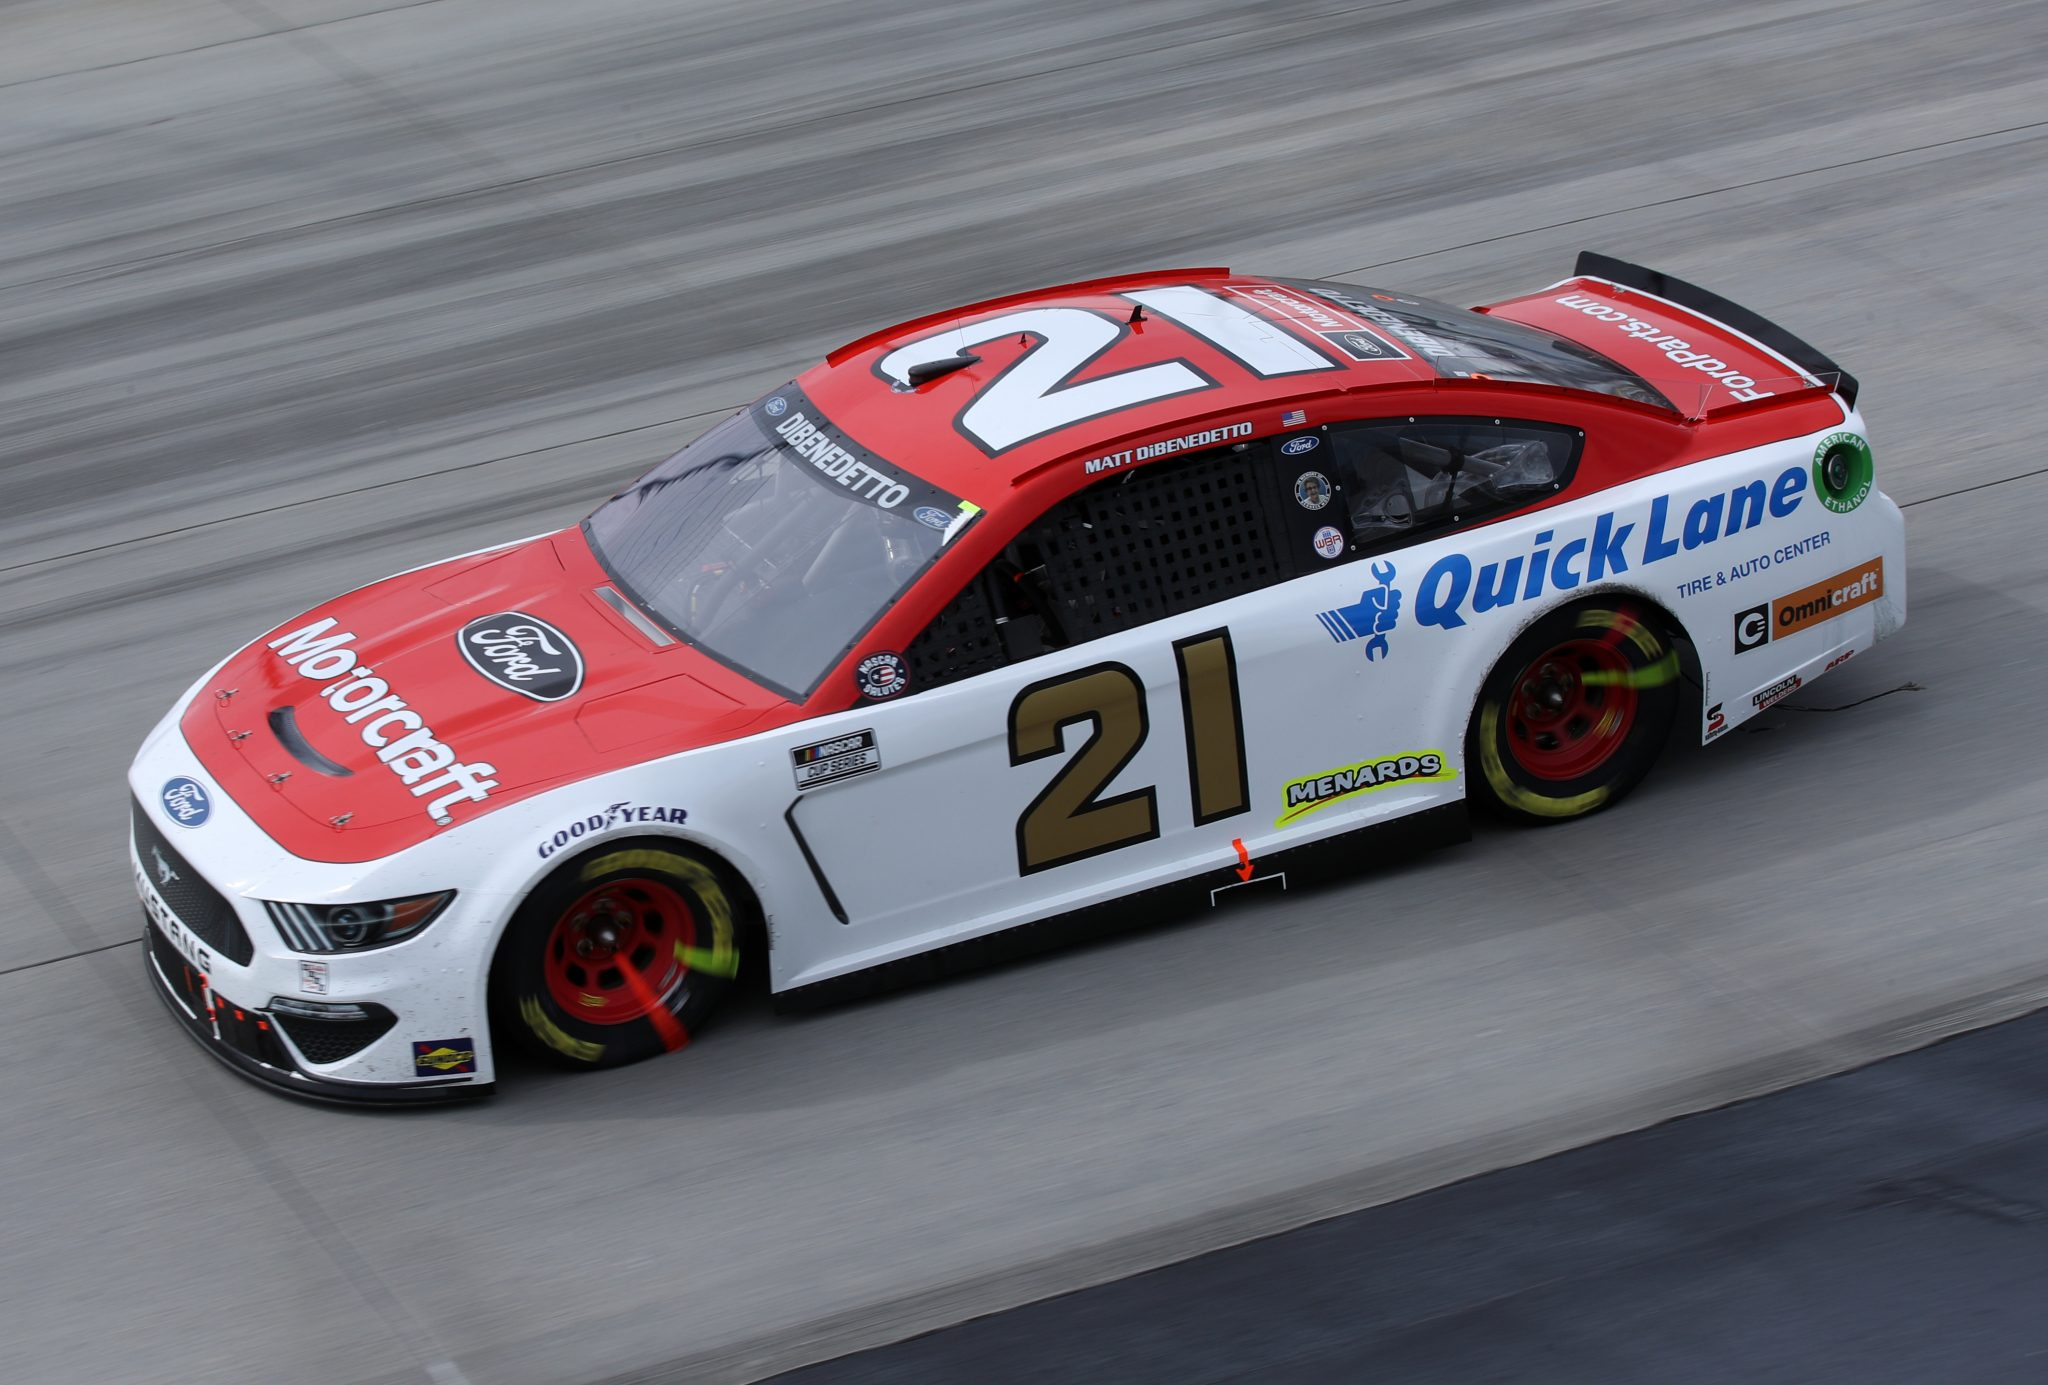 DOVER, DELAWARE - MAY 16: Matt DiBenedetto, driver of the #21 Motorcraft/Quick Lane Ford, races during the NASCAR Cup Series Drydene 400 at Dover International Speedway on May 16, 2021 in Dover, Delaware. (Photo by Sean Gardner/Getty Images) | Getty Images